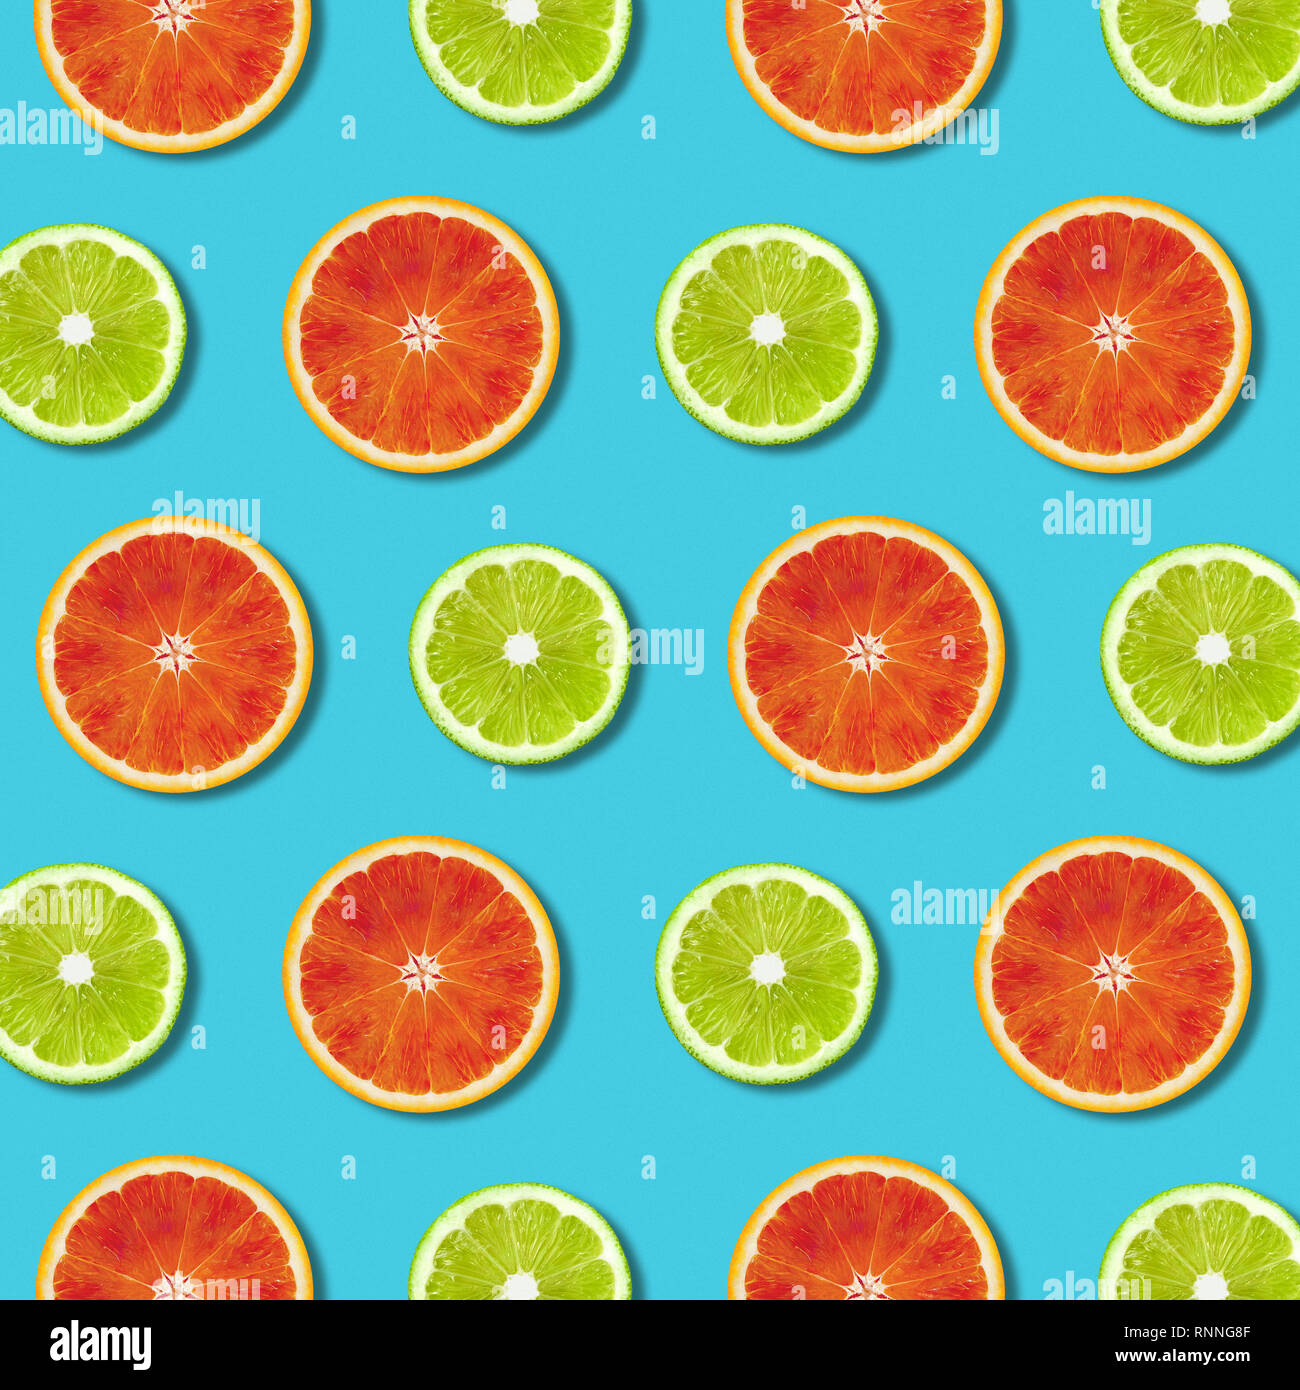 Vibrant red orange and green lime lemon slices pattern on turquoise color background. Minimal flat lay top view food texture Stock Photo